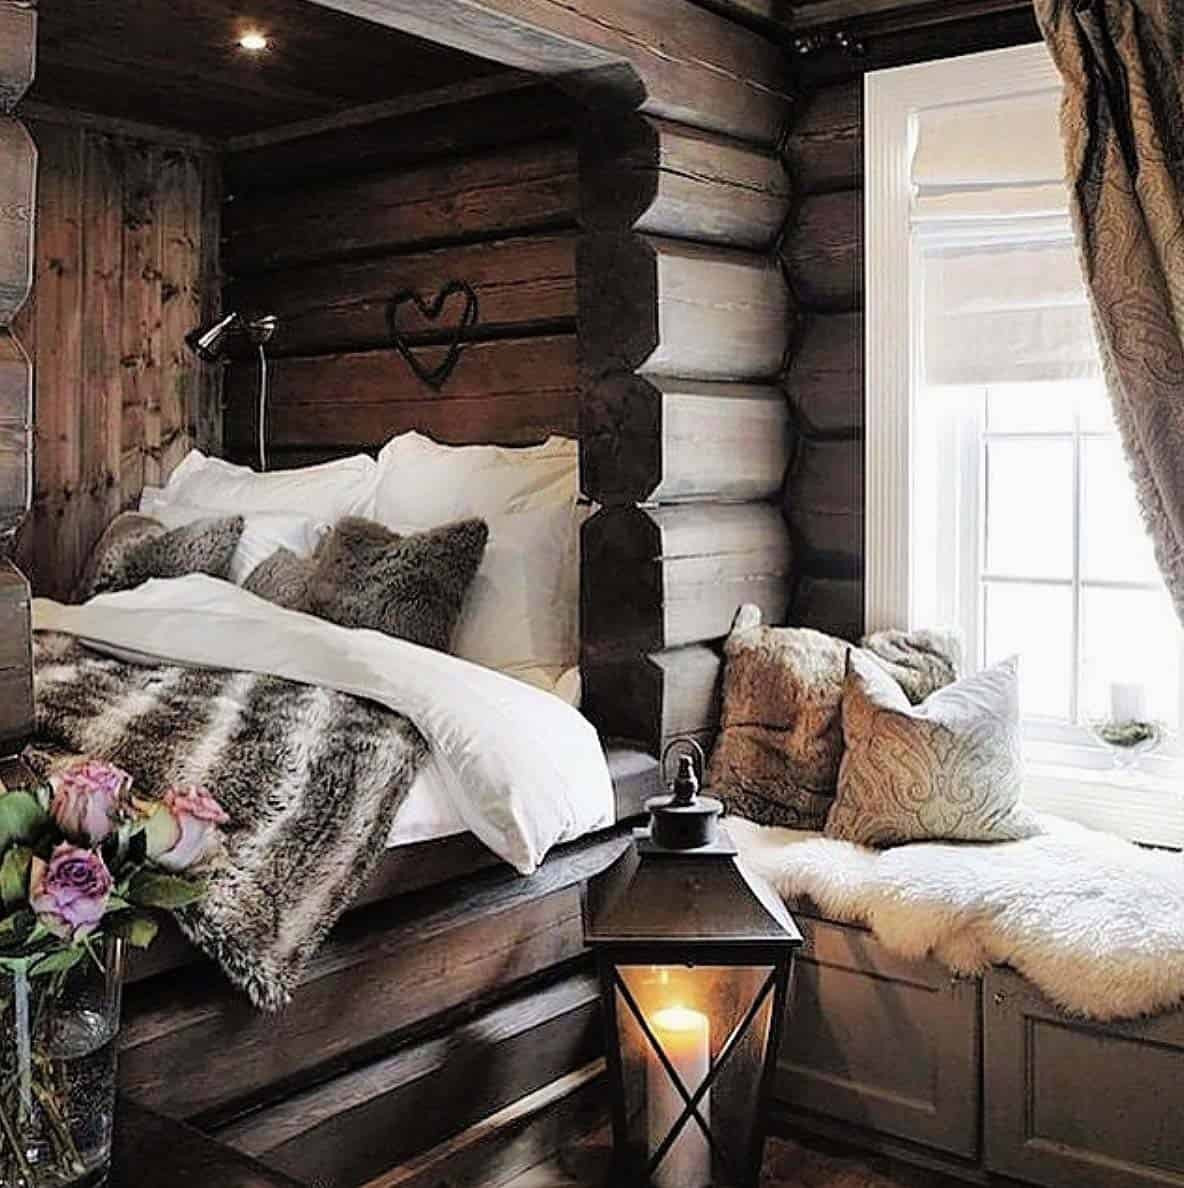 33 ultra cozy bedroom decorating ideas for winter warmth for Winter bedroom